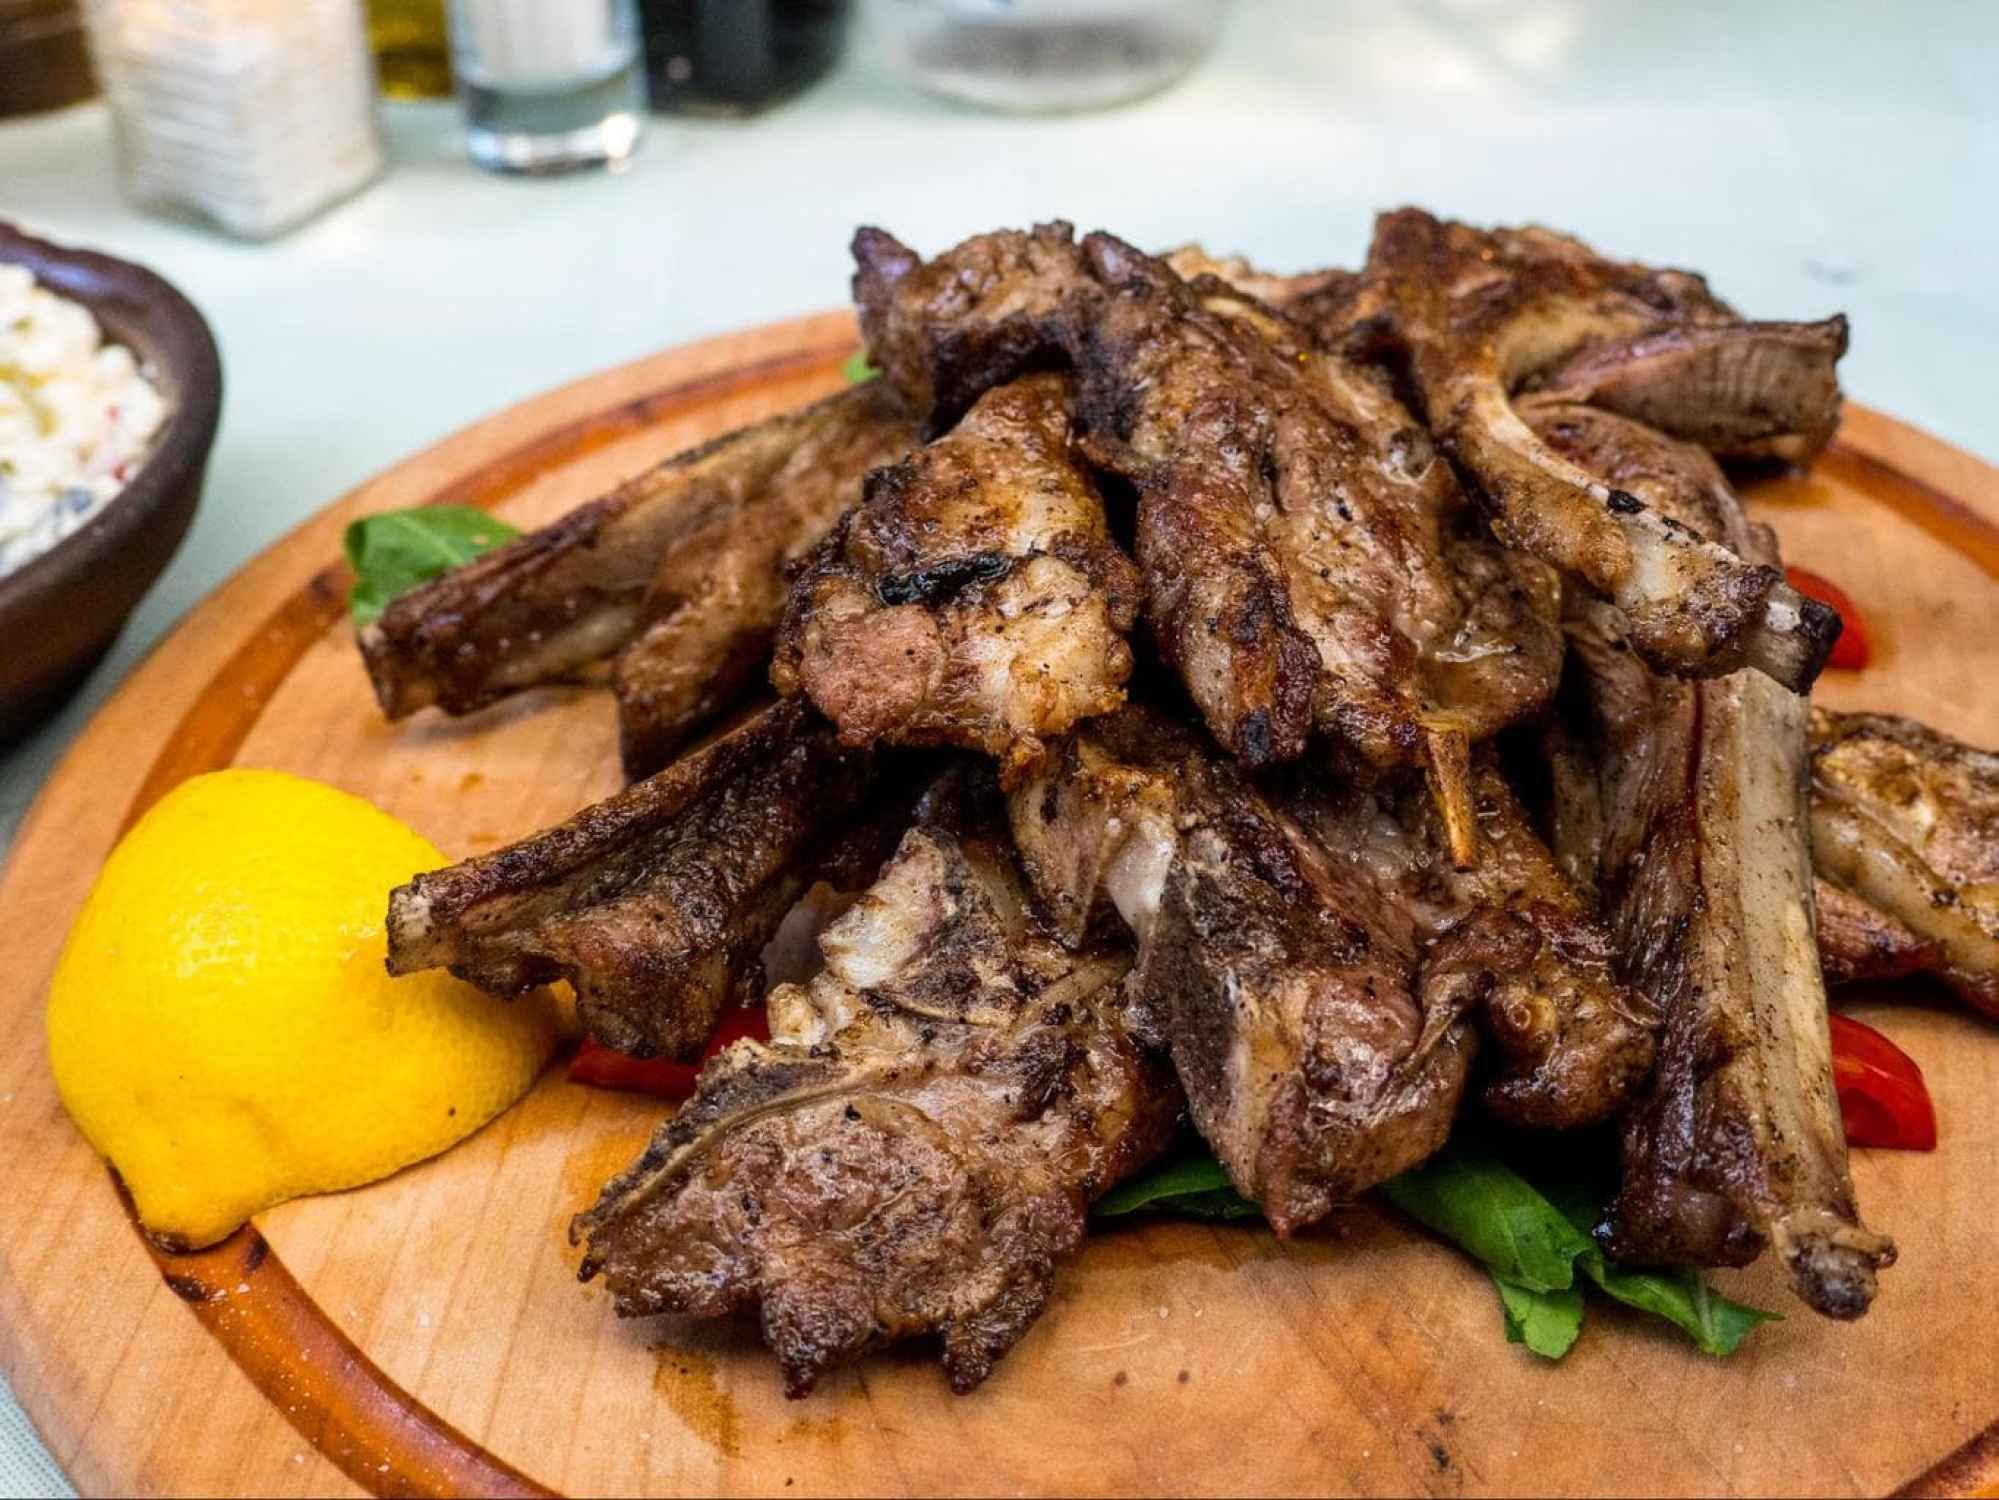 Grilled lamb